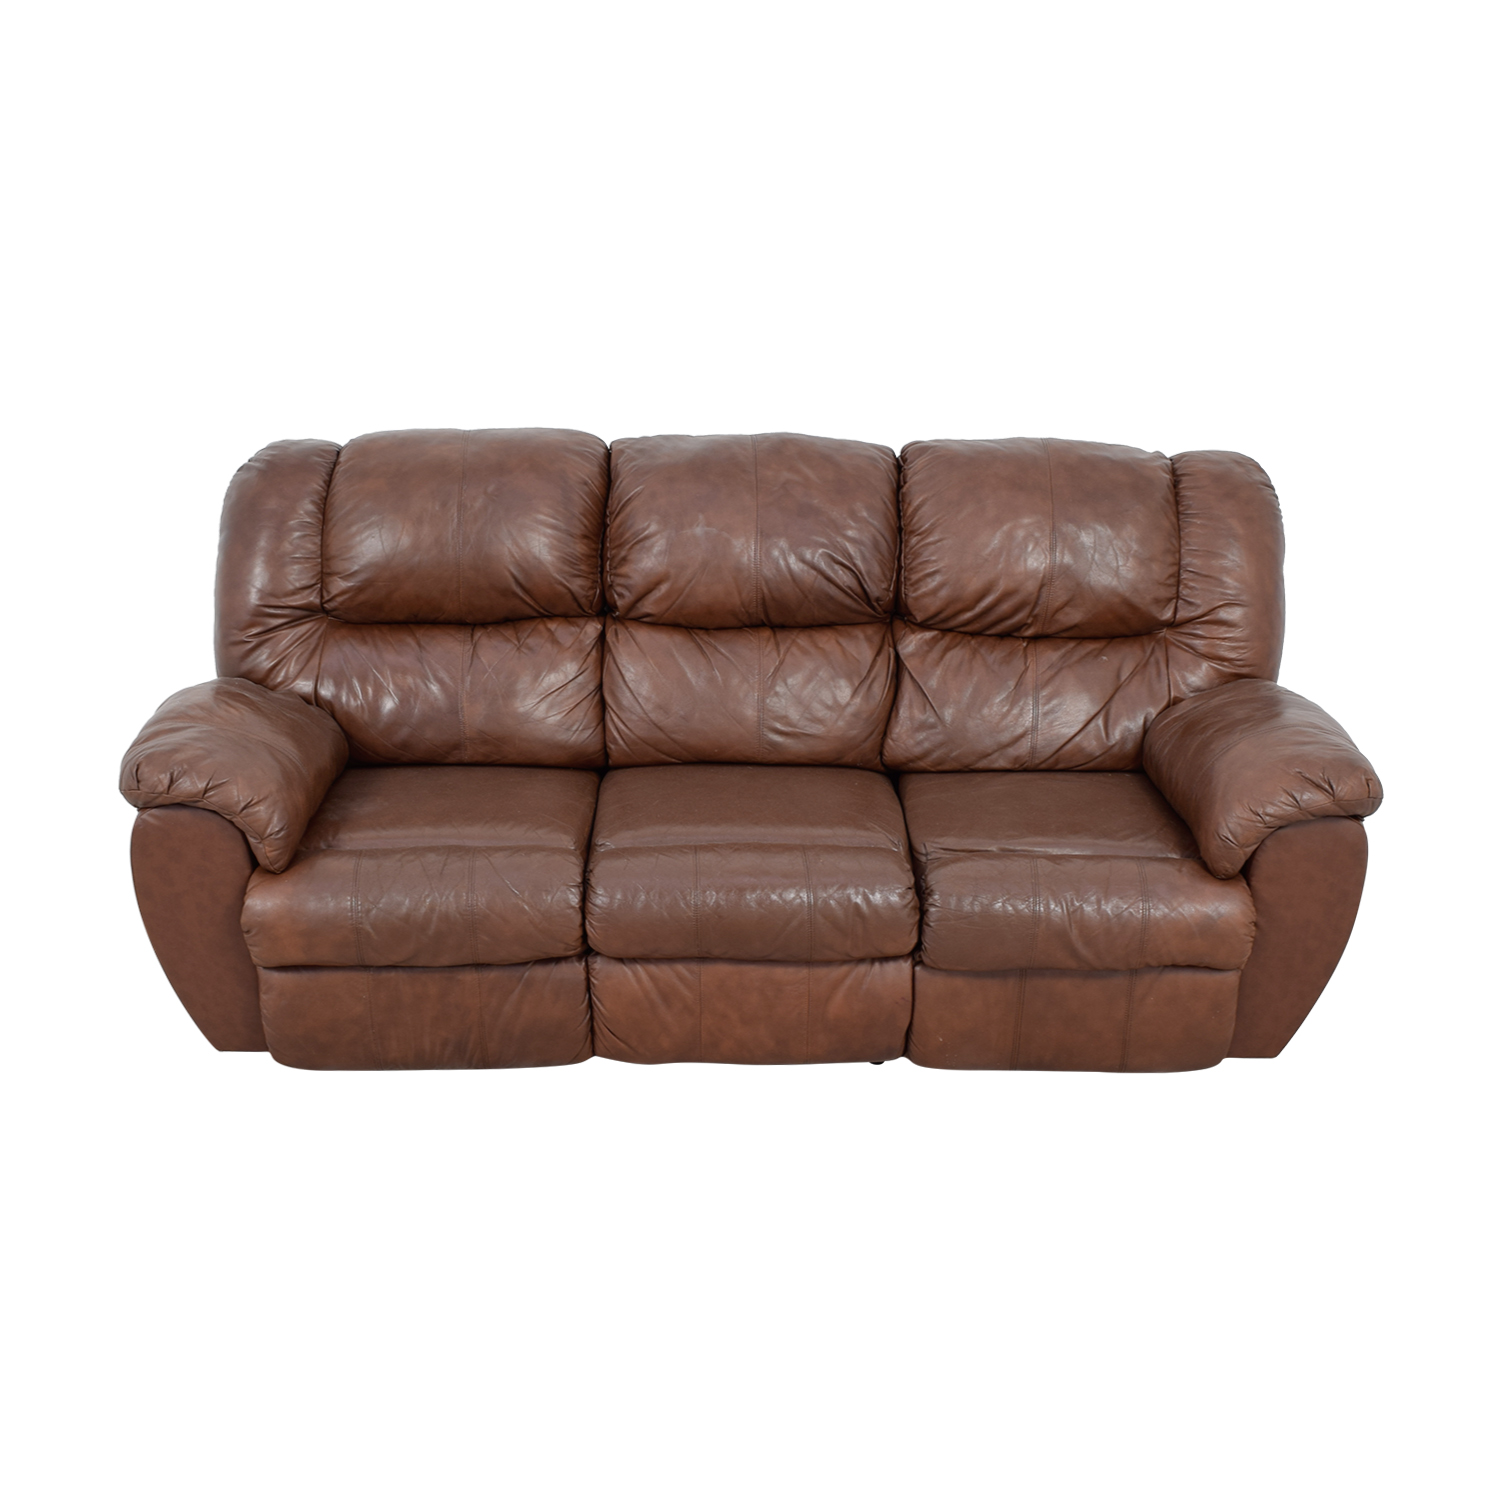 Ashley Furniture Dual Reclining Brown Leather Couch Dimensions